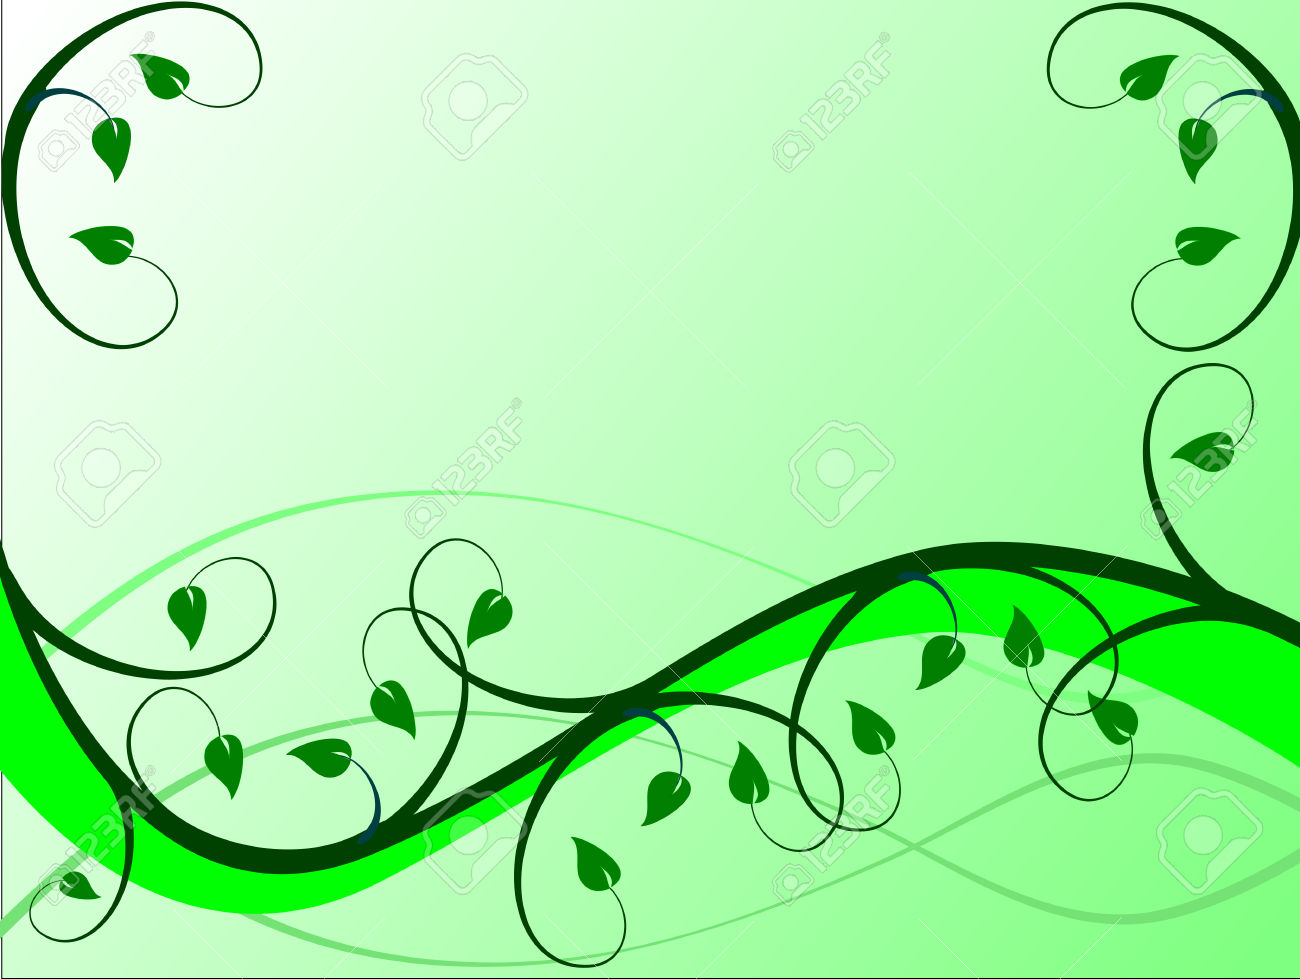 A Floral Background In Shades Of Green With Leaves And Swirls.